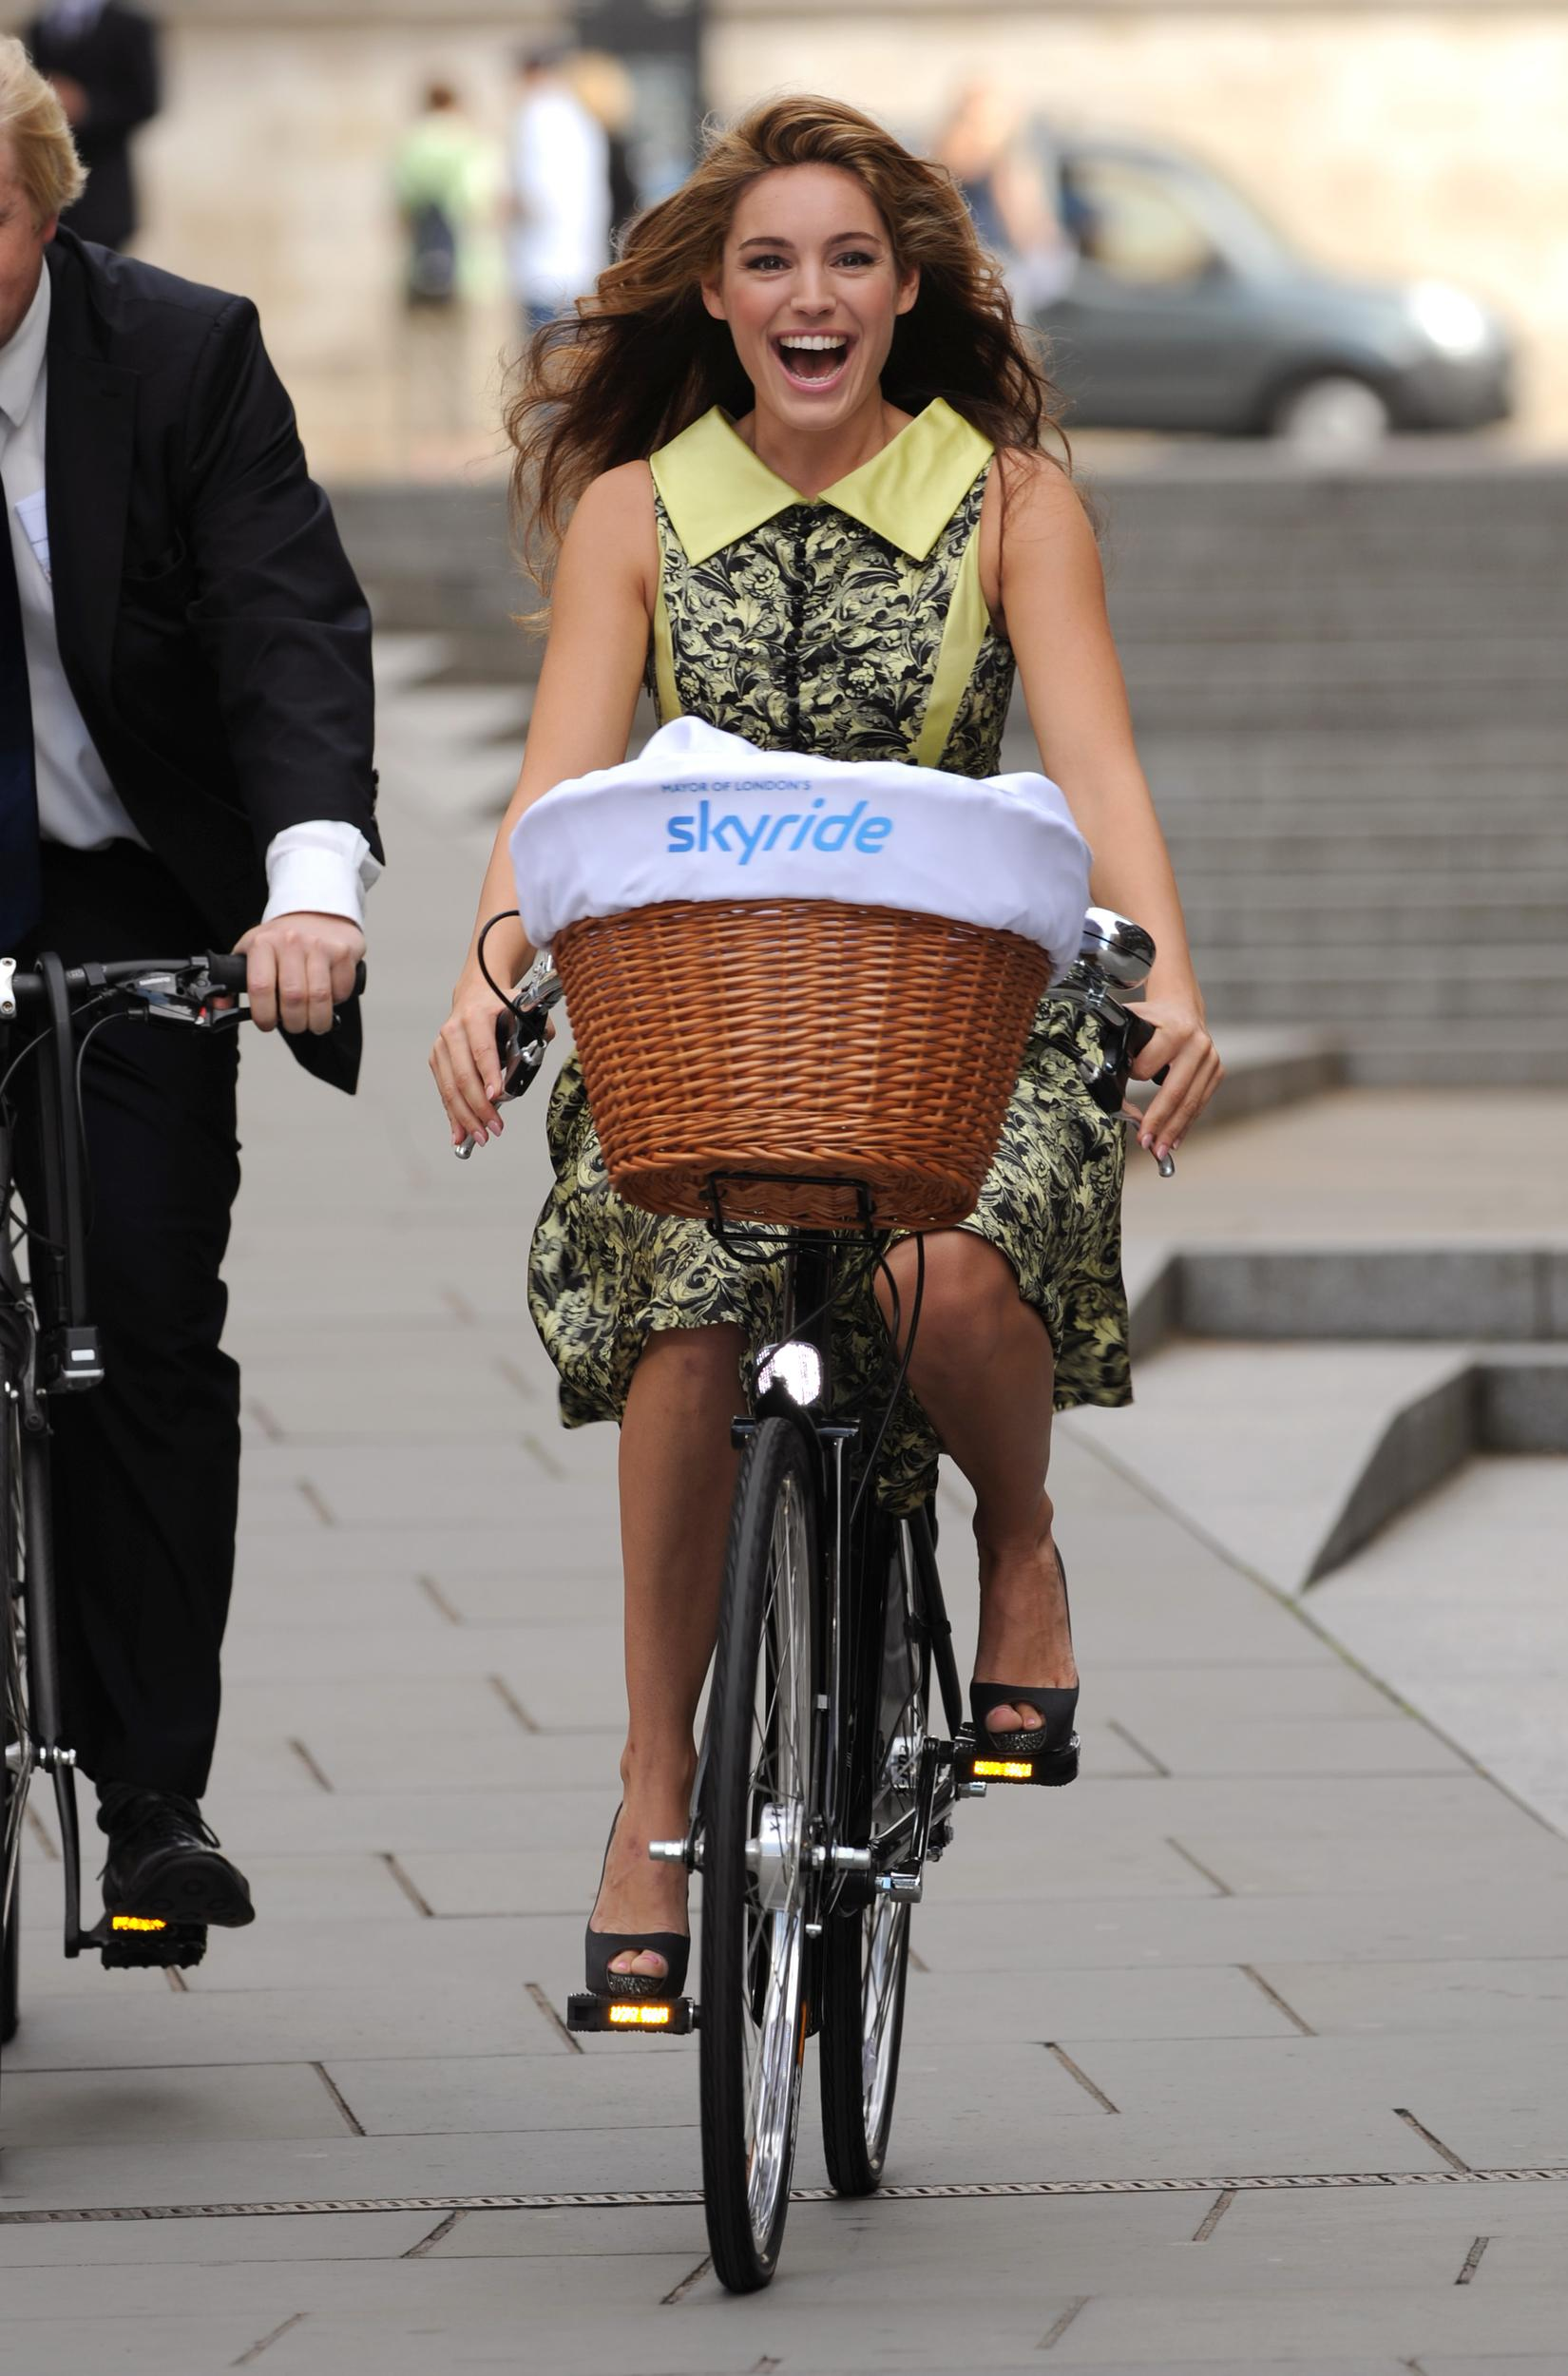 Boris Johnson and TV star Kelly Brook launch the Mayor of London's Skyride, Peter's Hill steps, London.